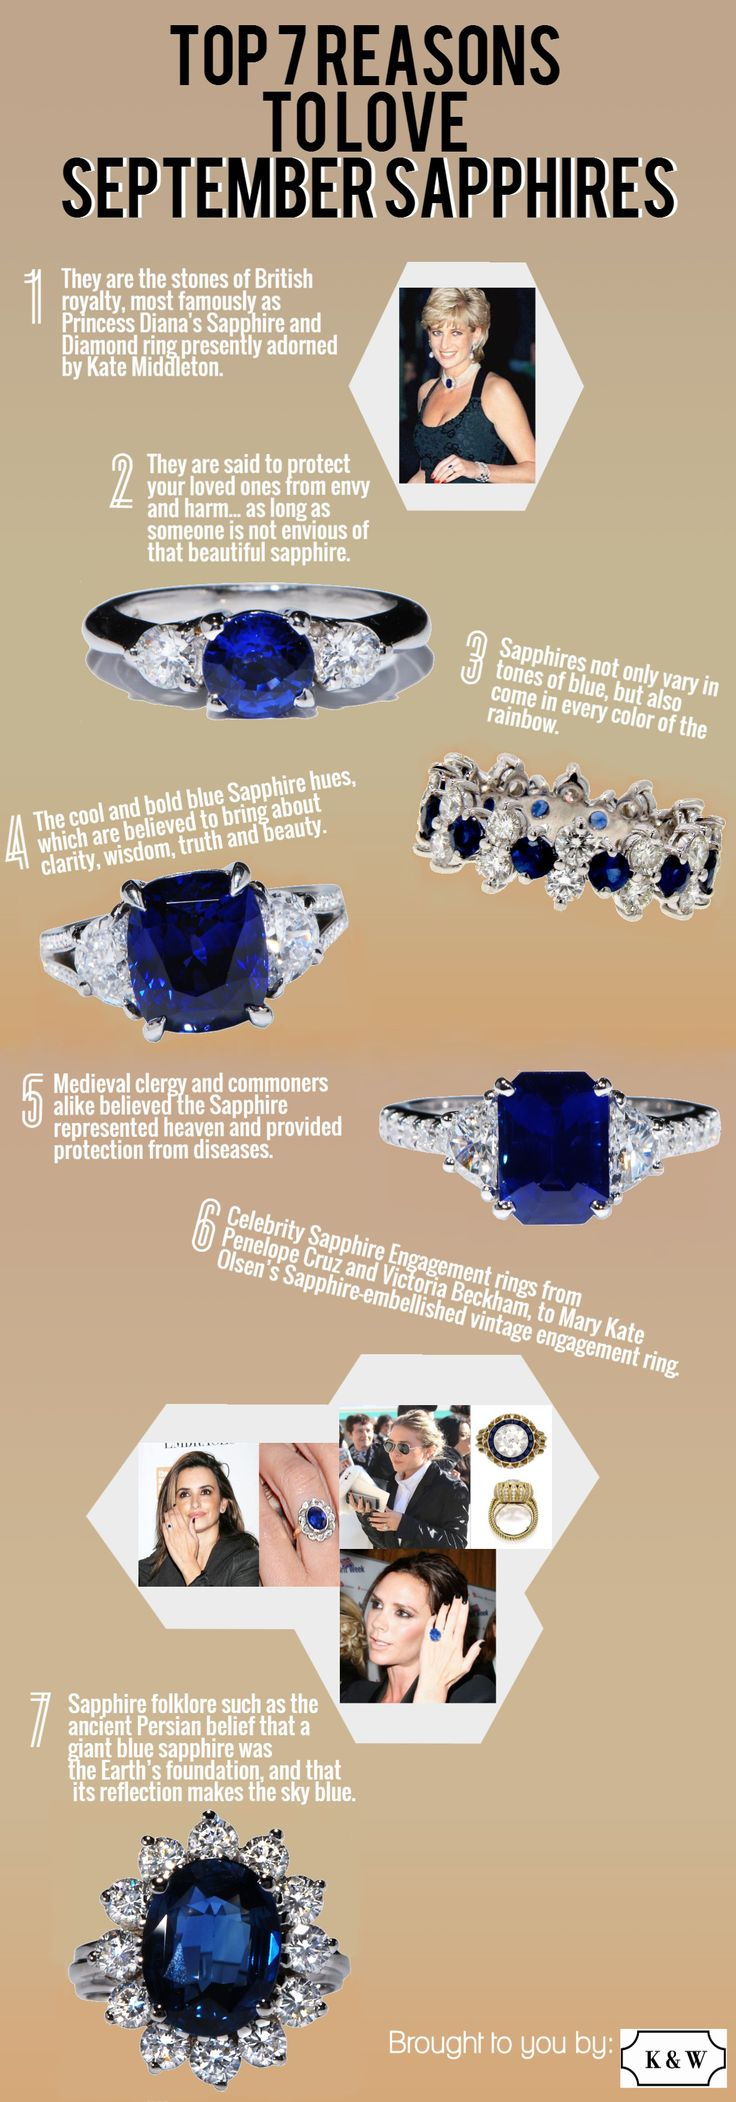 It's officially Fall! Sapphires kick off the season as the birthstone of September, so here are 7 reasons why we love Sapphires!